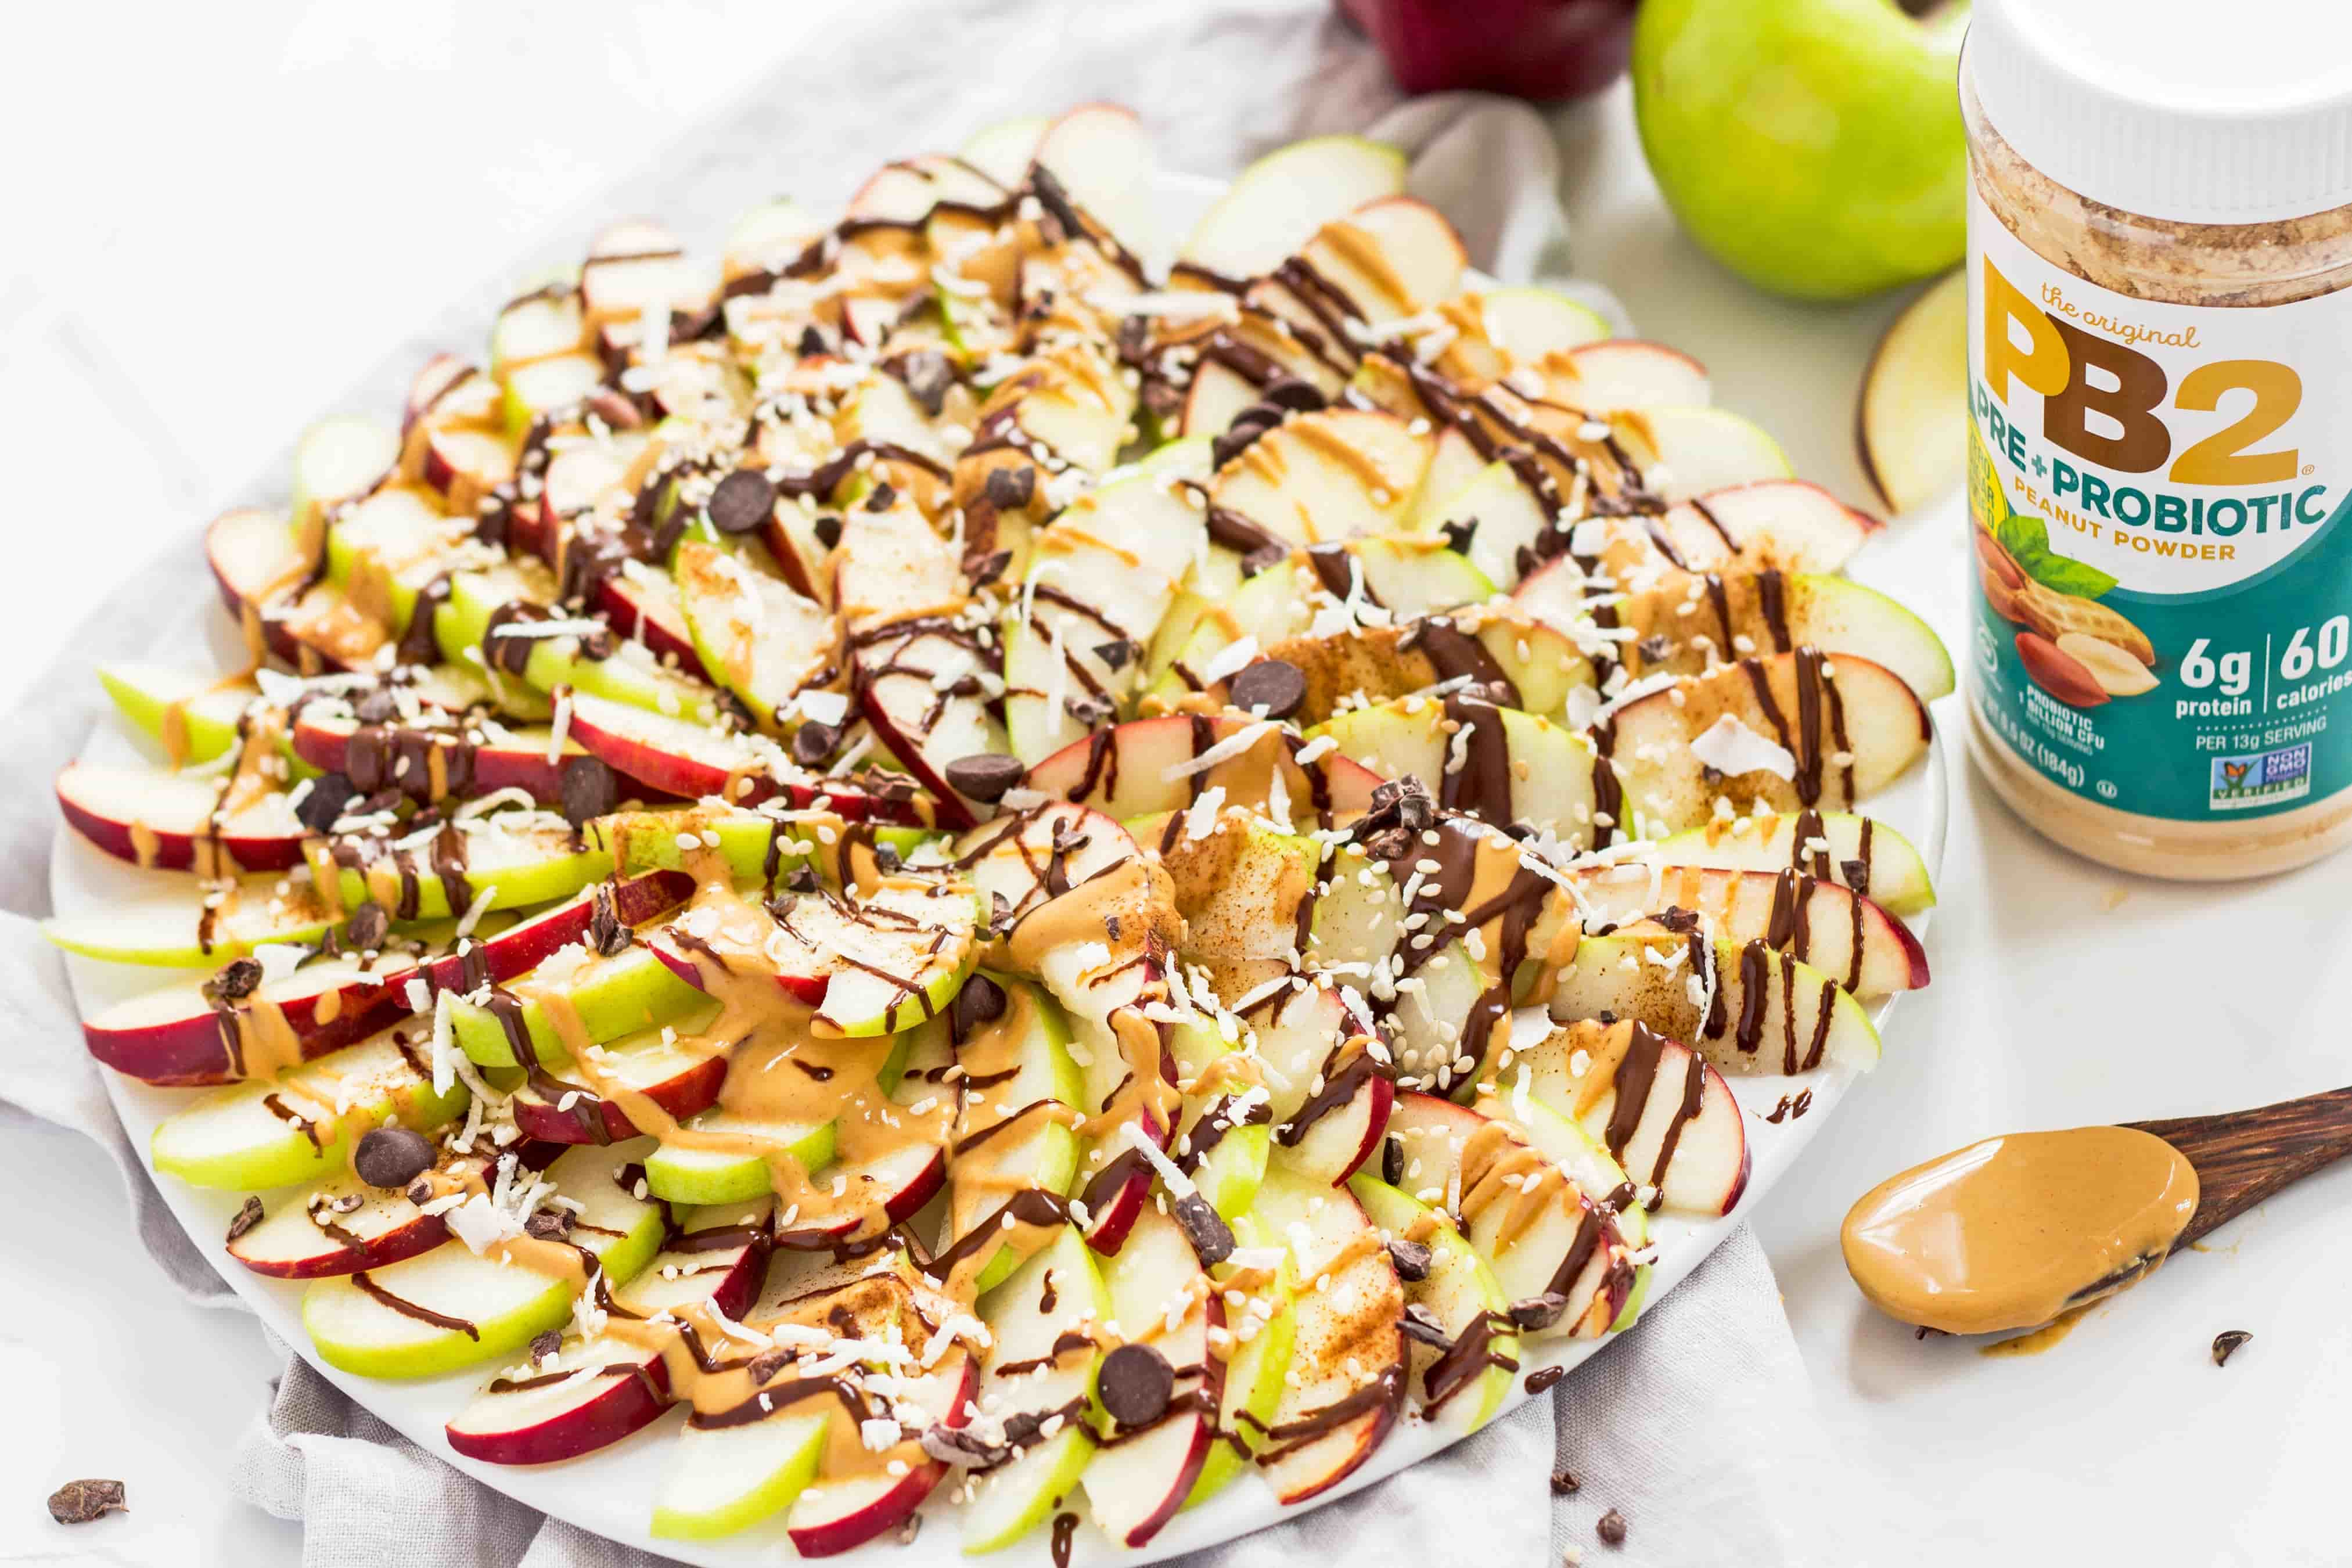 Apple Nacho Platter